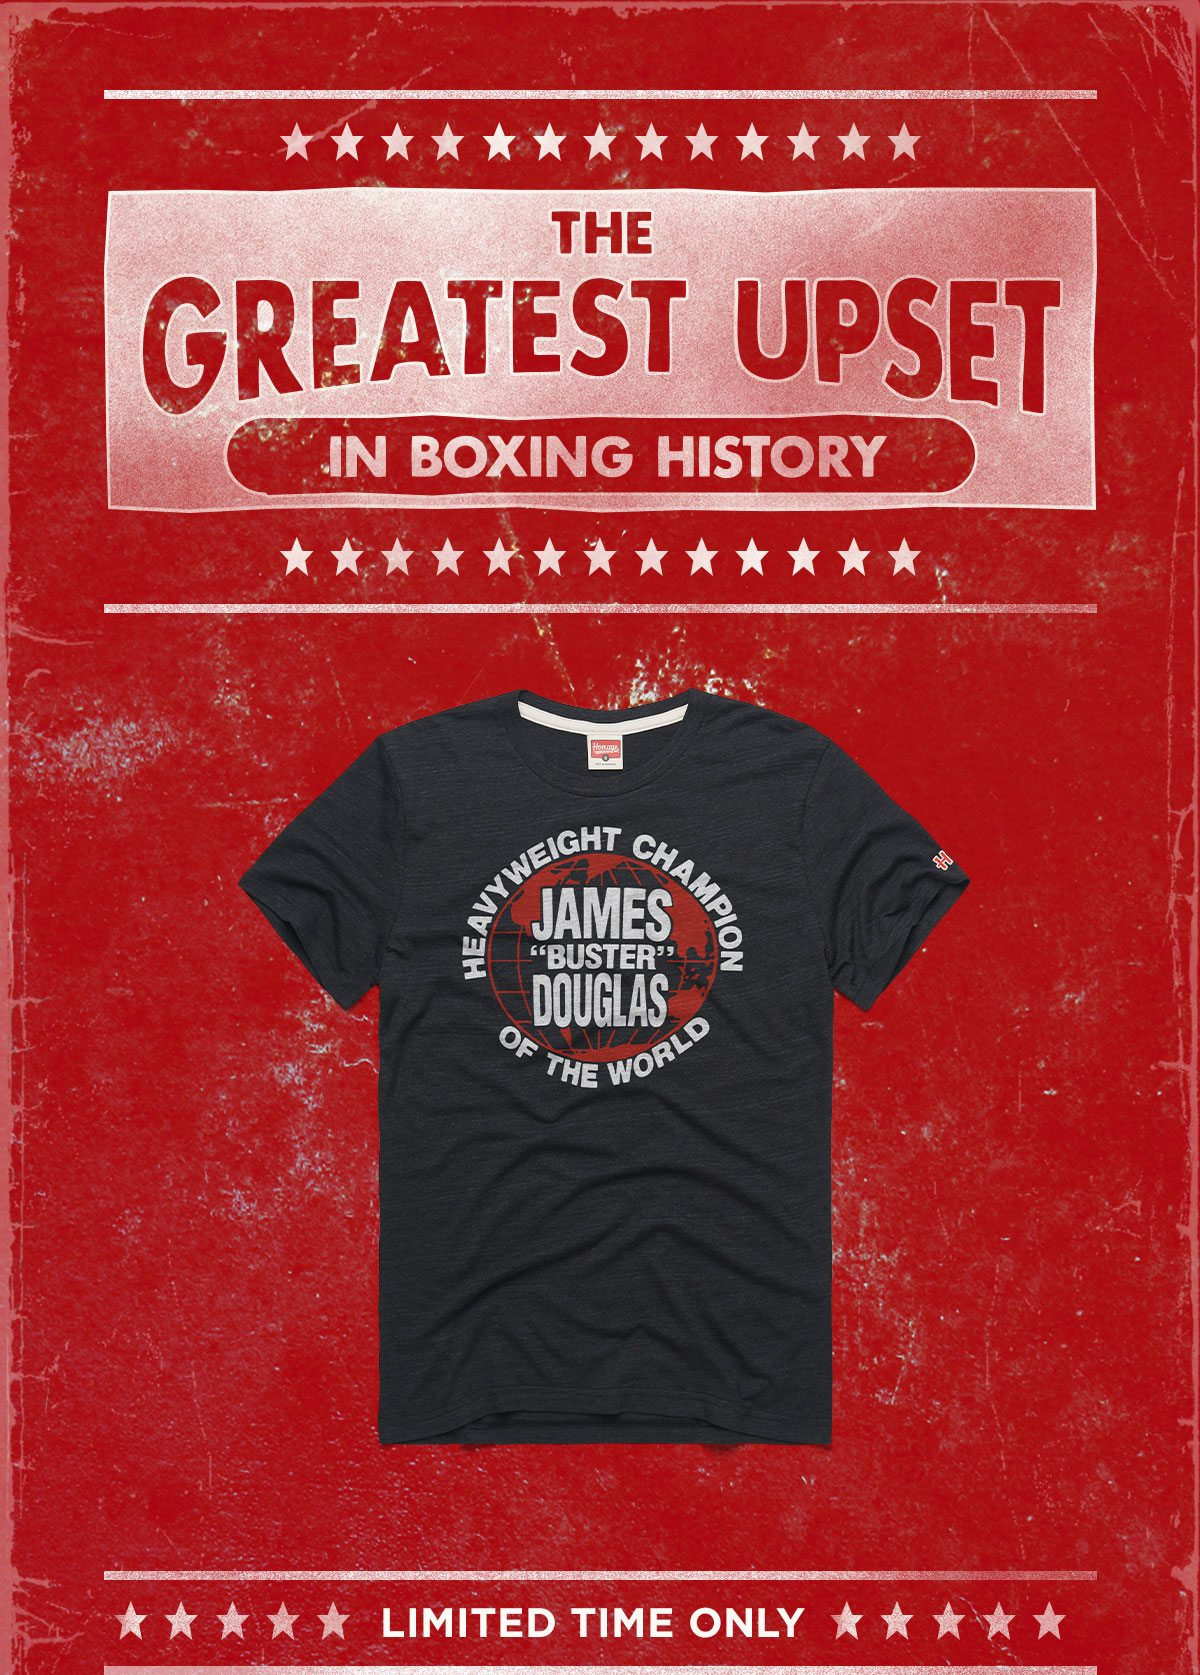 The Greatest Upset in Boxing History